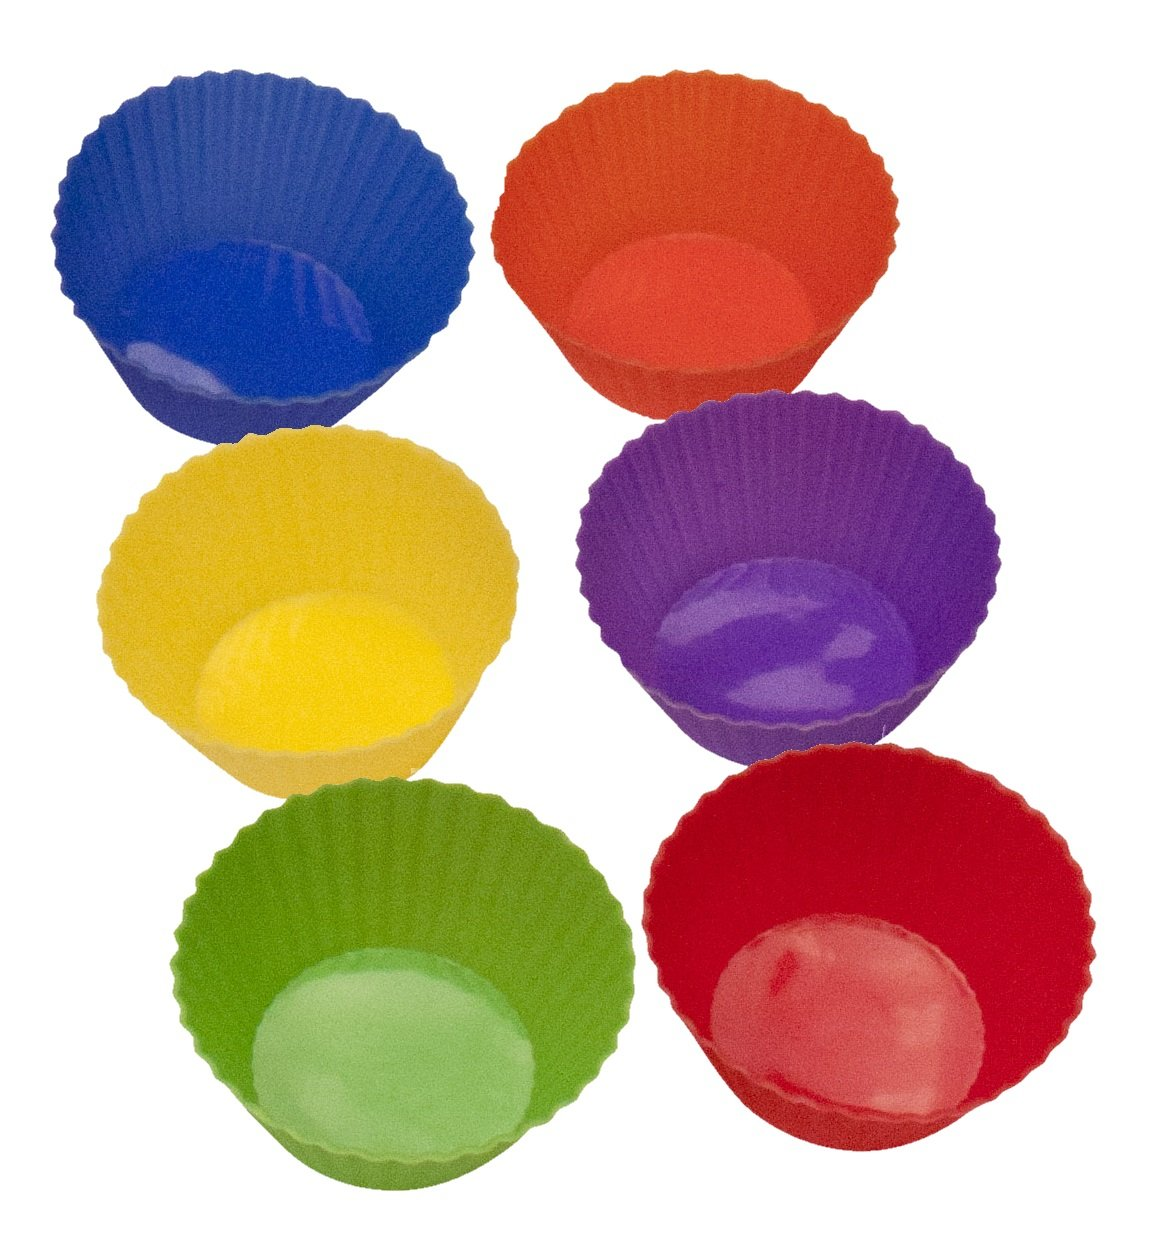 Curious Chef TCC50165 16-Piece Cupcake and Decorating Kit, Child, Multicolored by Curious Chef (Image #4)